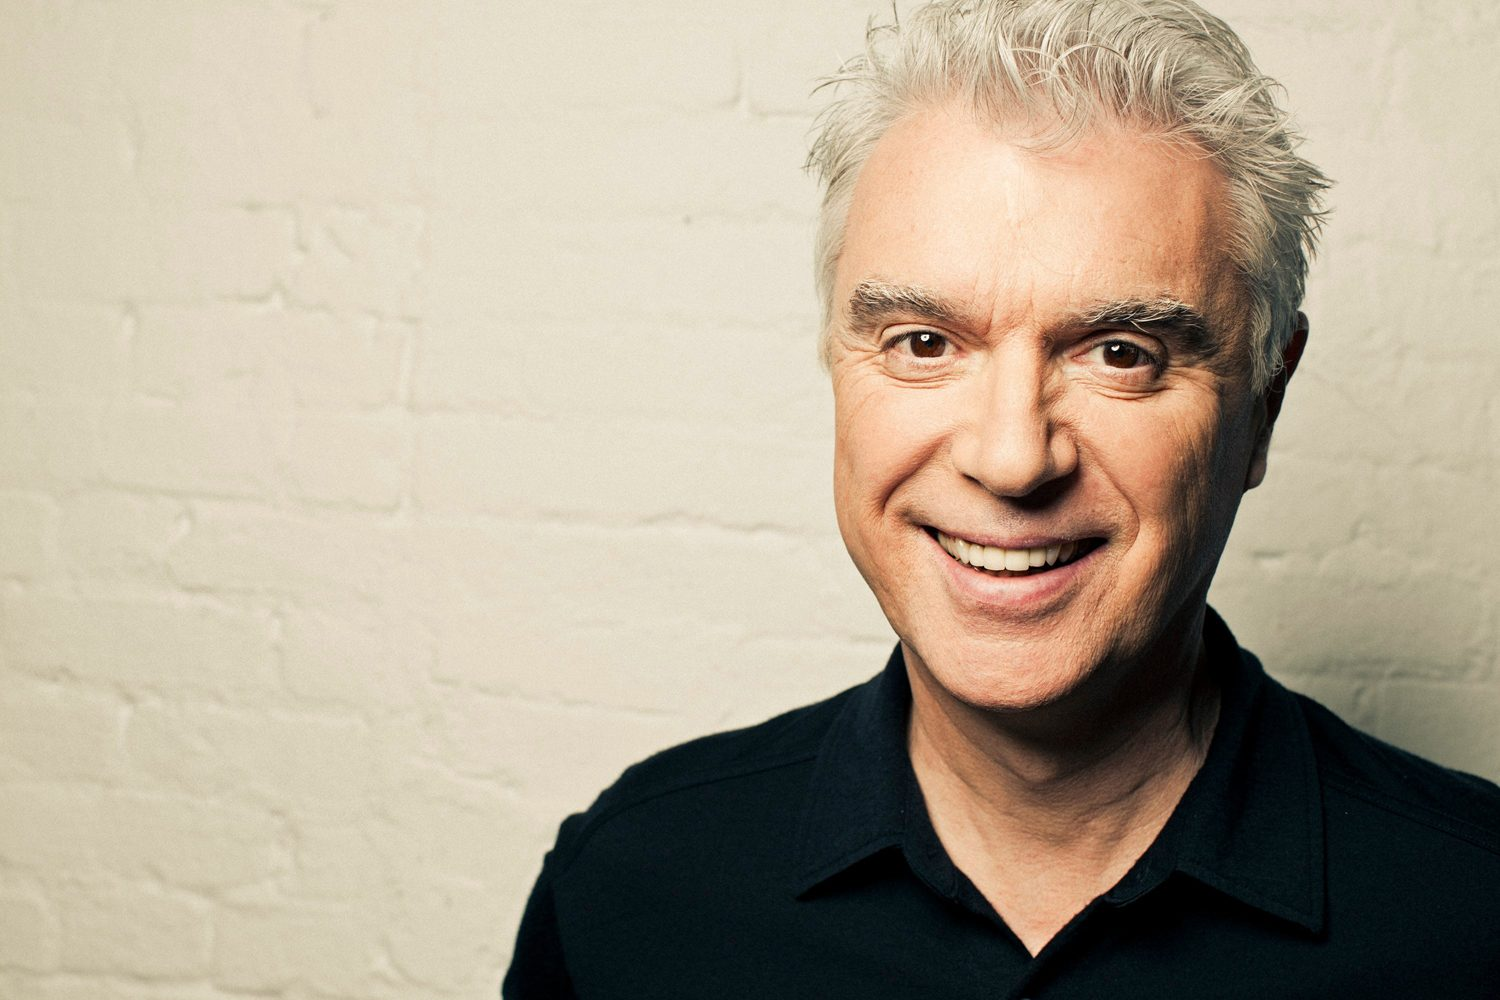 Album Review: David Byrne - David Byrne